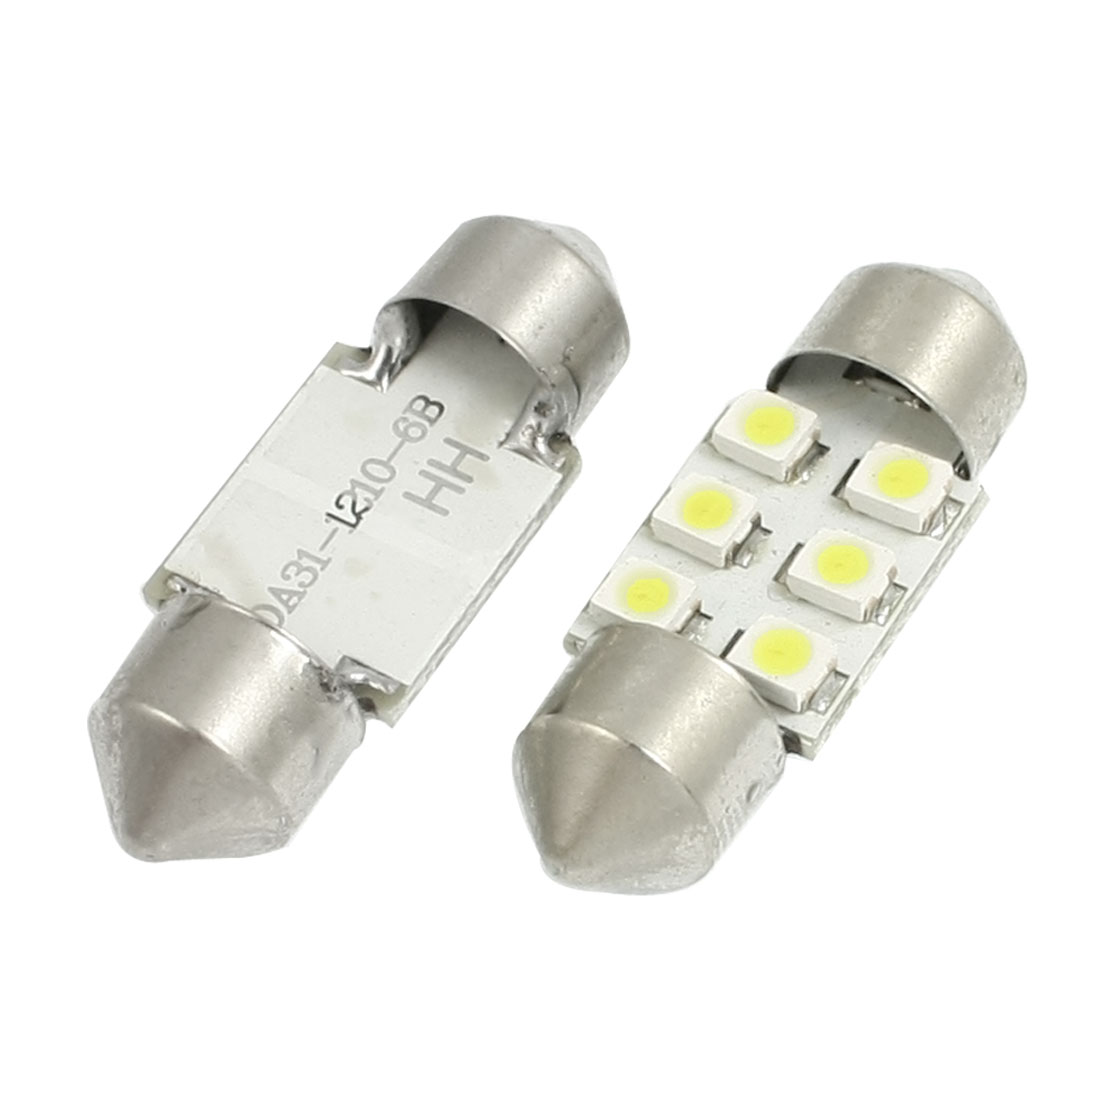 2 Pcs 12V White 31mm 6 SMD 1210 3528 Festoon LED Light DE3175 Bulbs